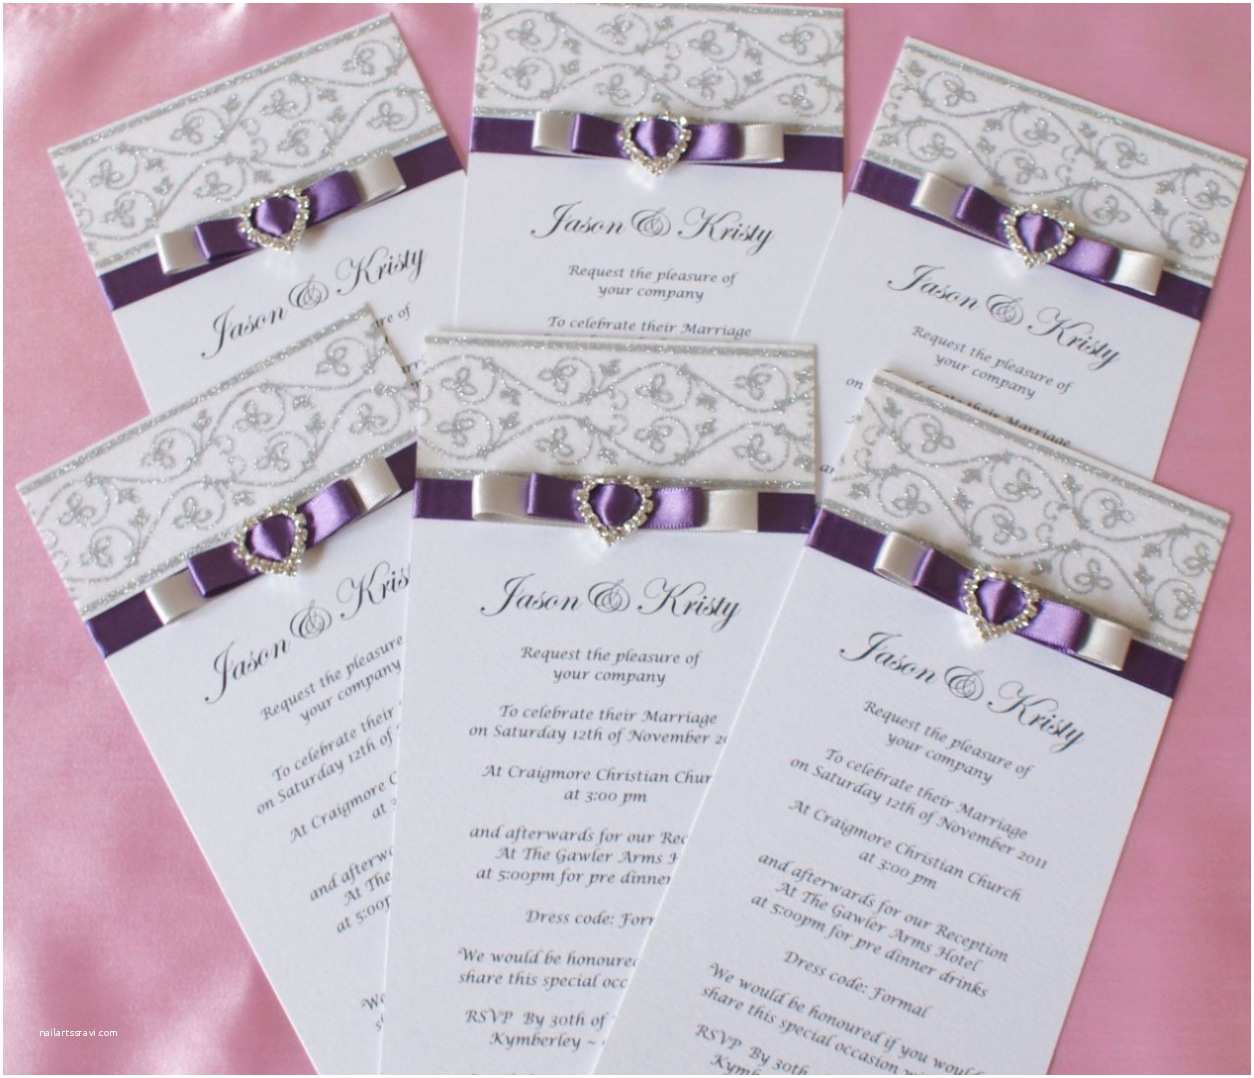 costco wedding invitations online